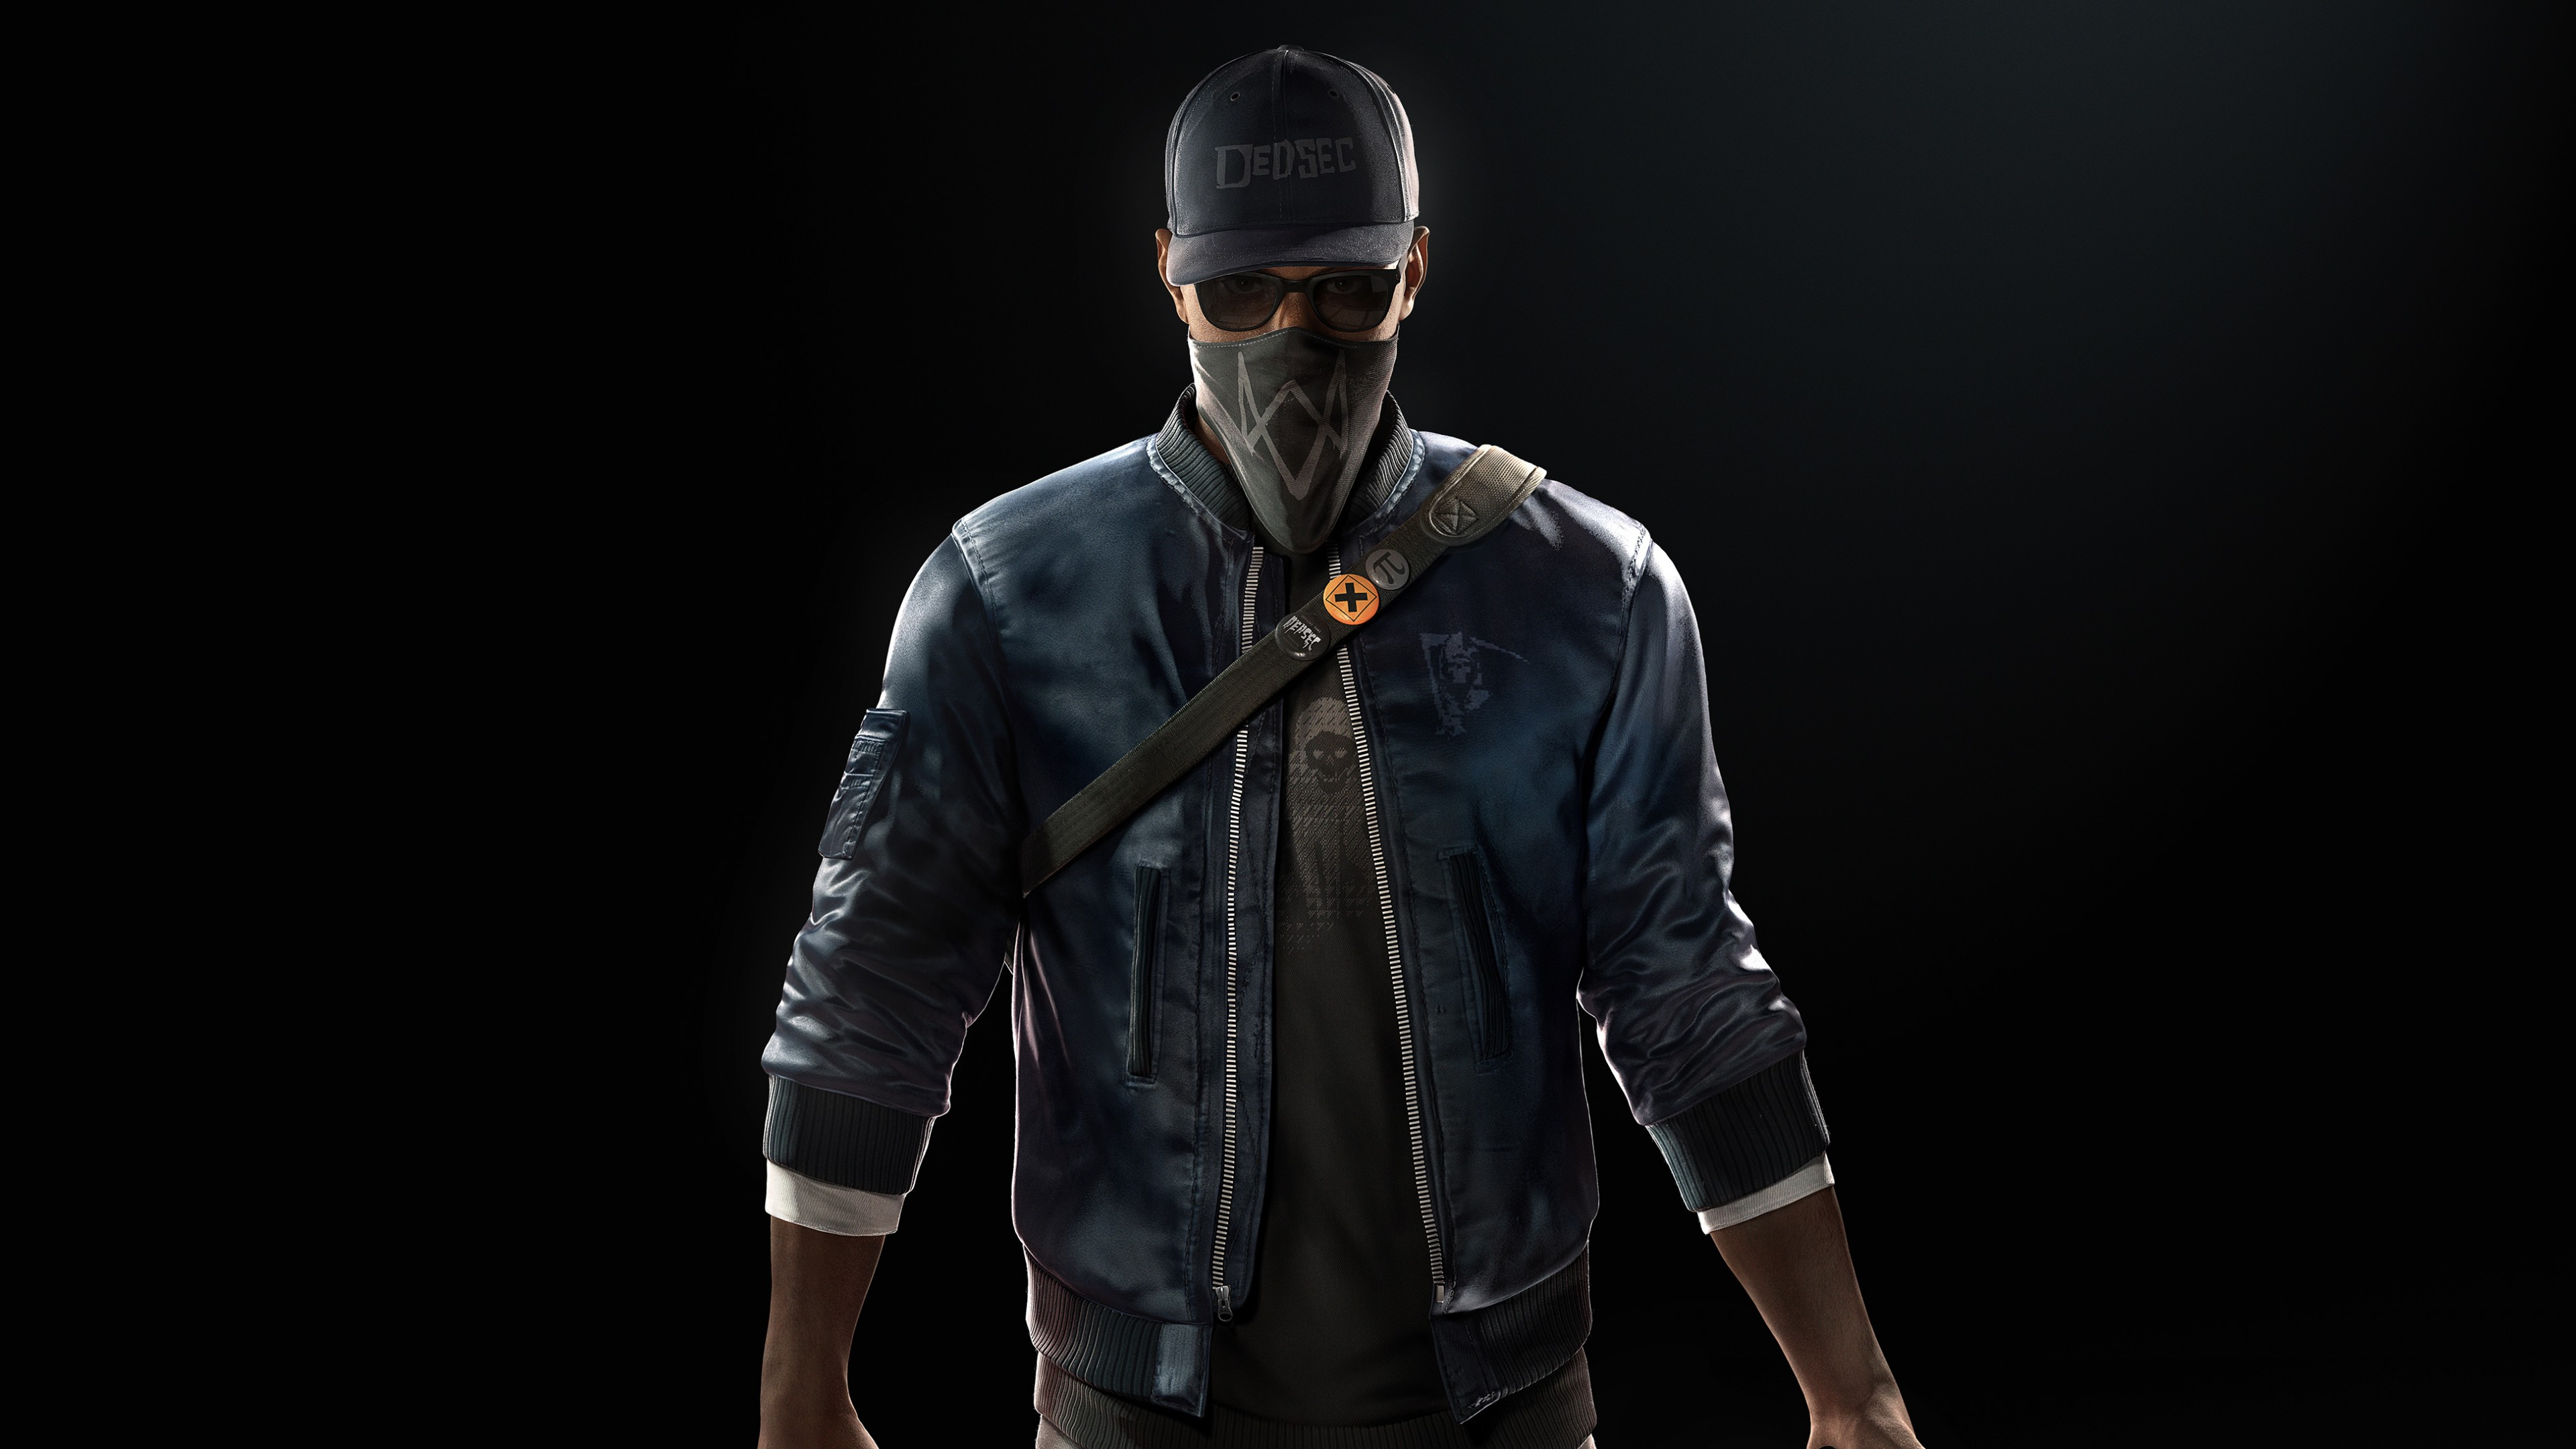 marcus-3840x2160-watch-dogs-2-pc-ps4-wallpapers.jpg - Watch_Dogs 2